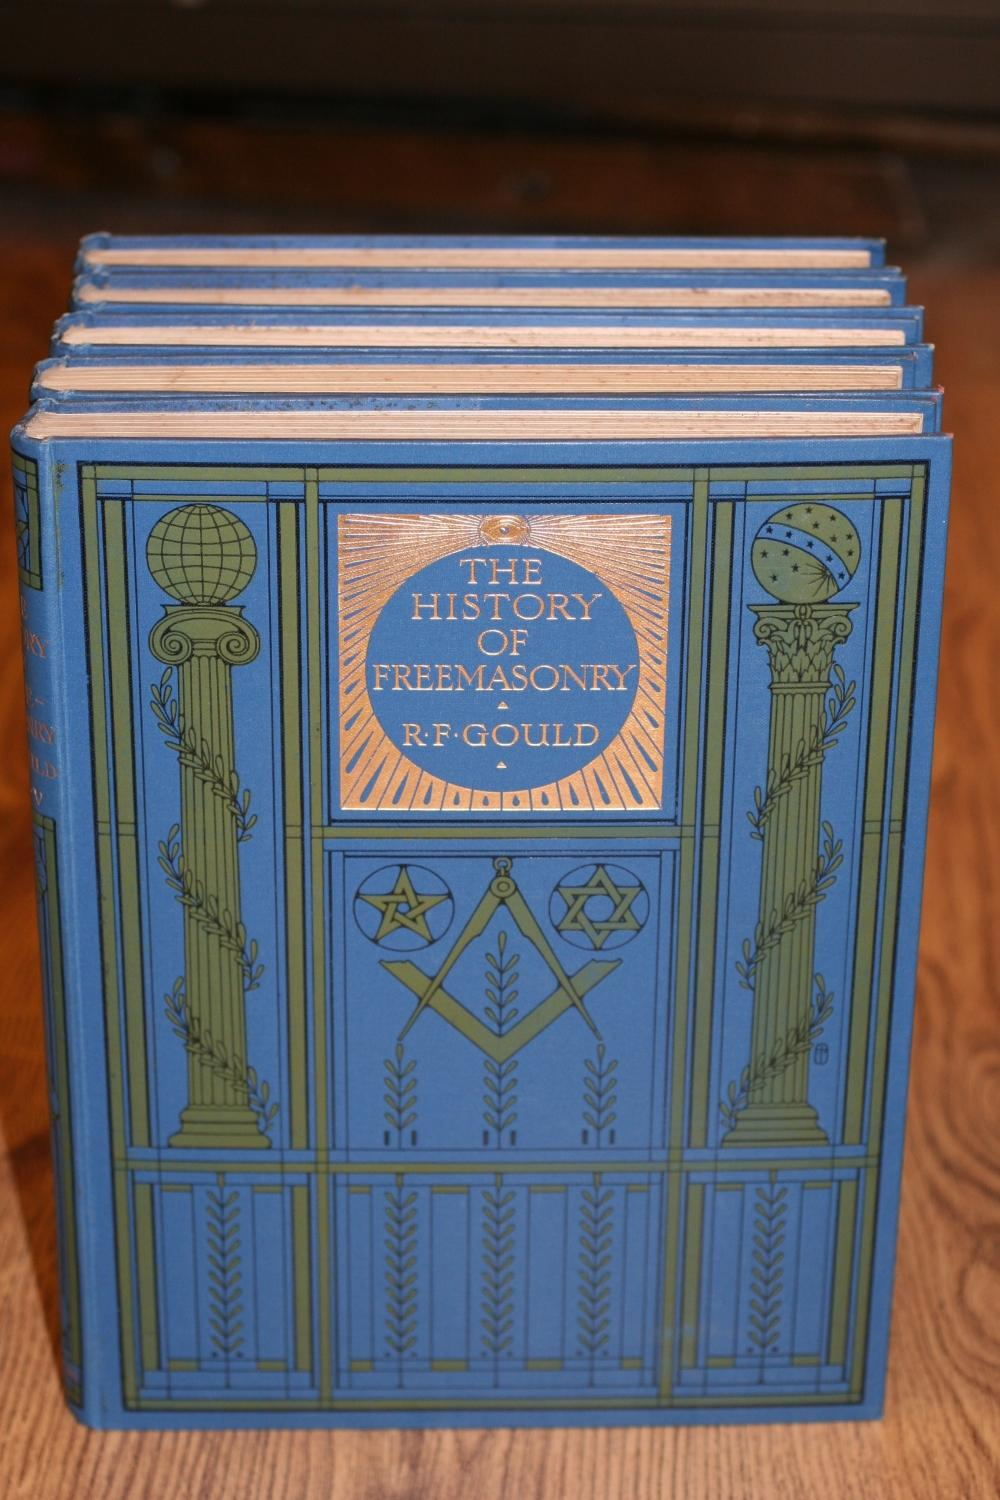 The History of Freemasonry by R.F. Gould